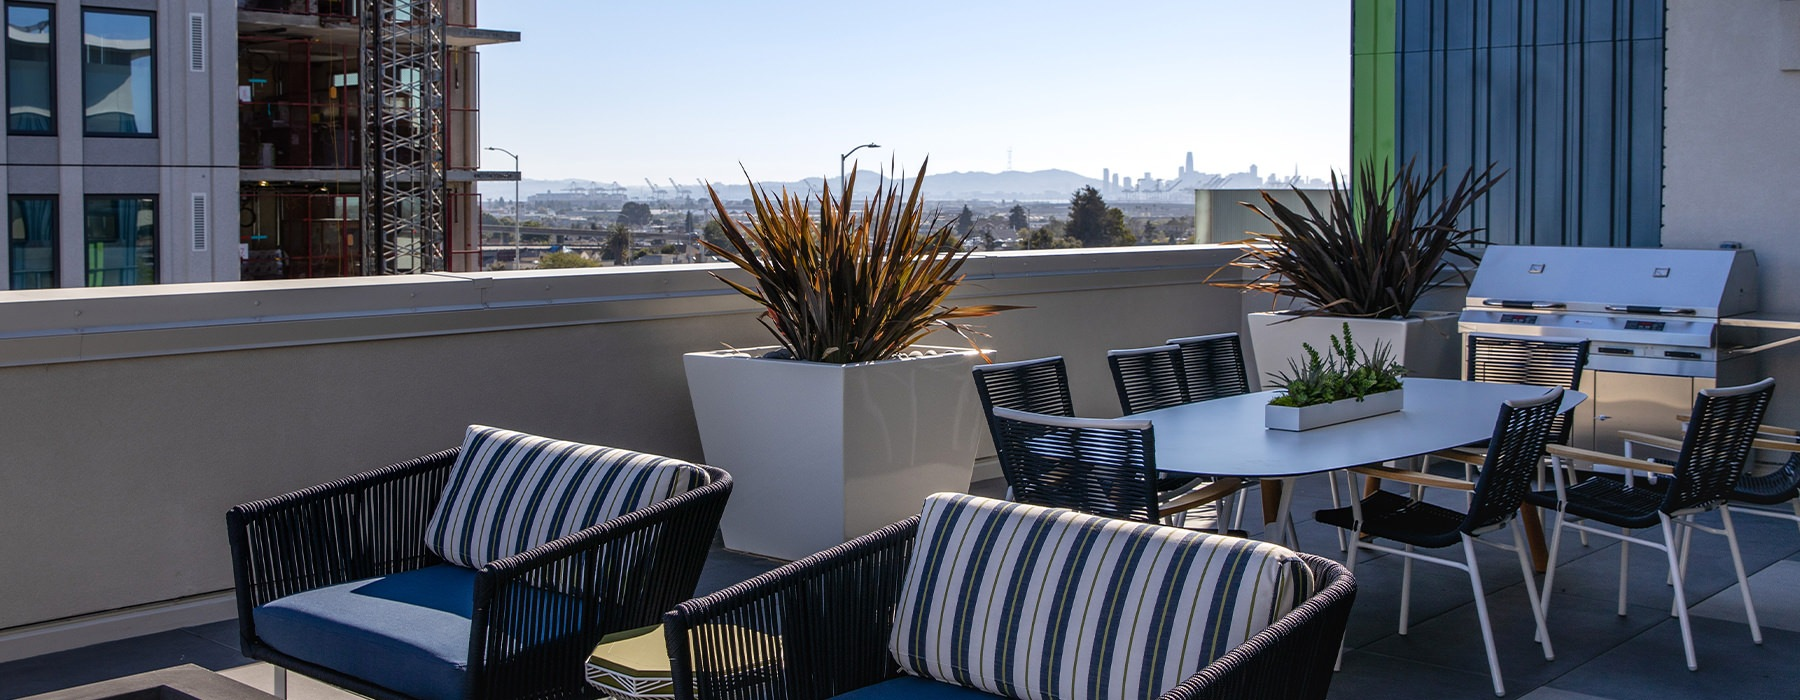 Rooftop patio space with a view of the city